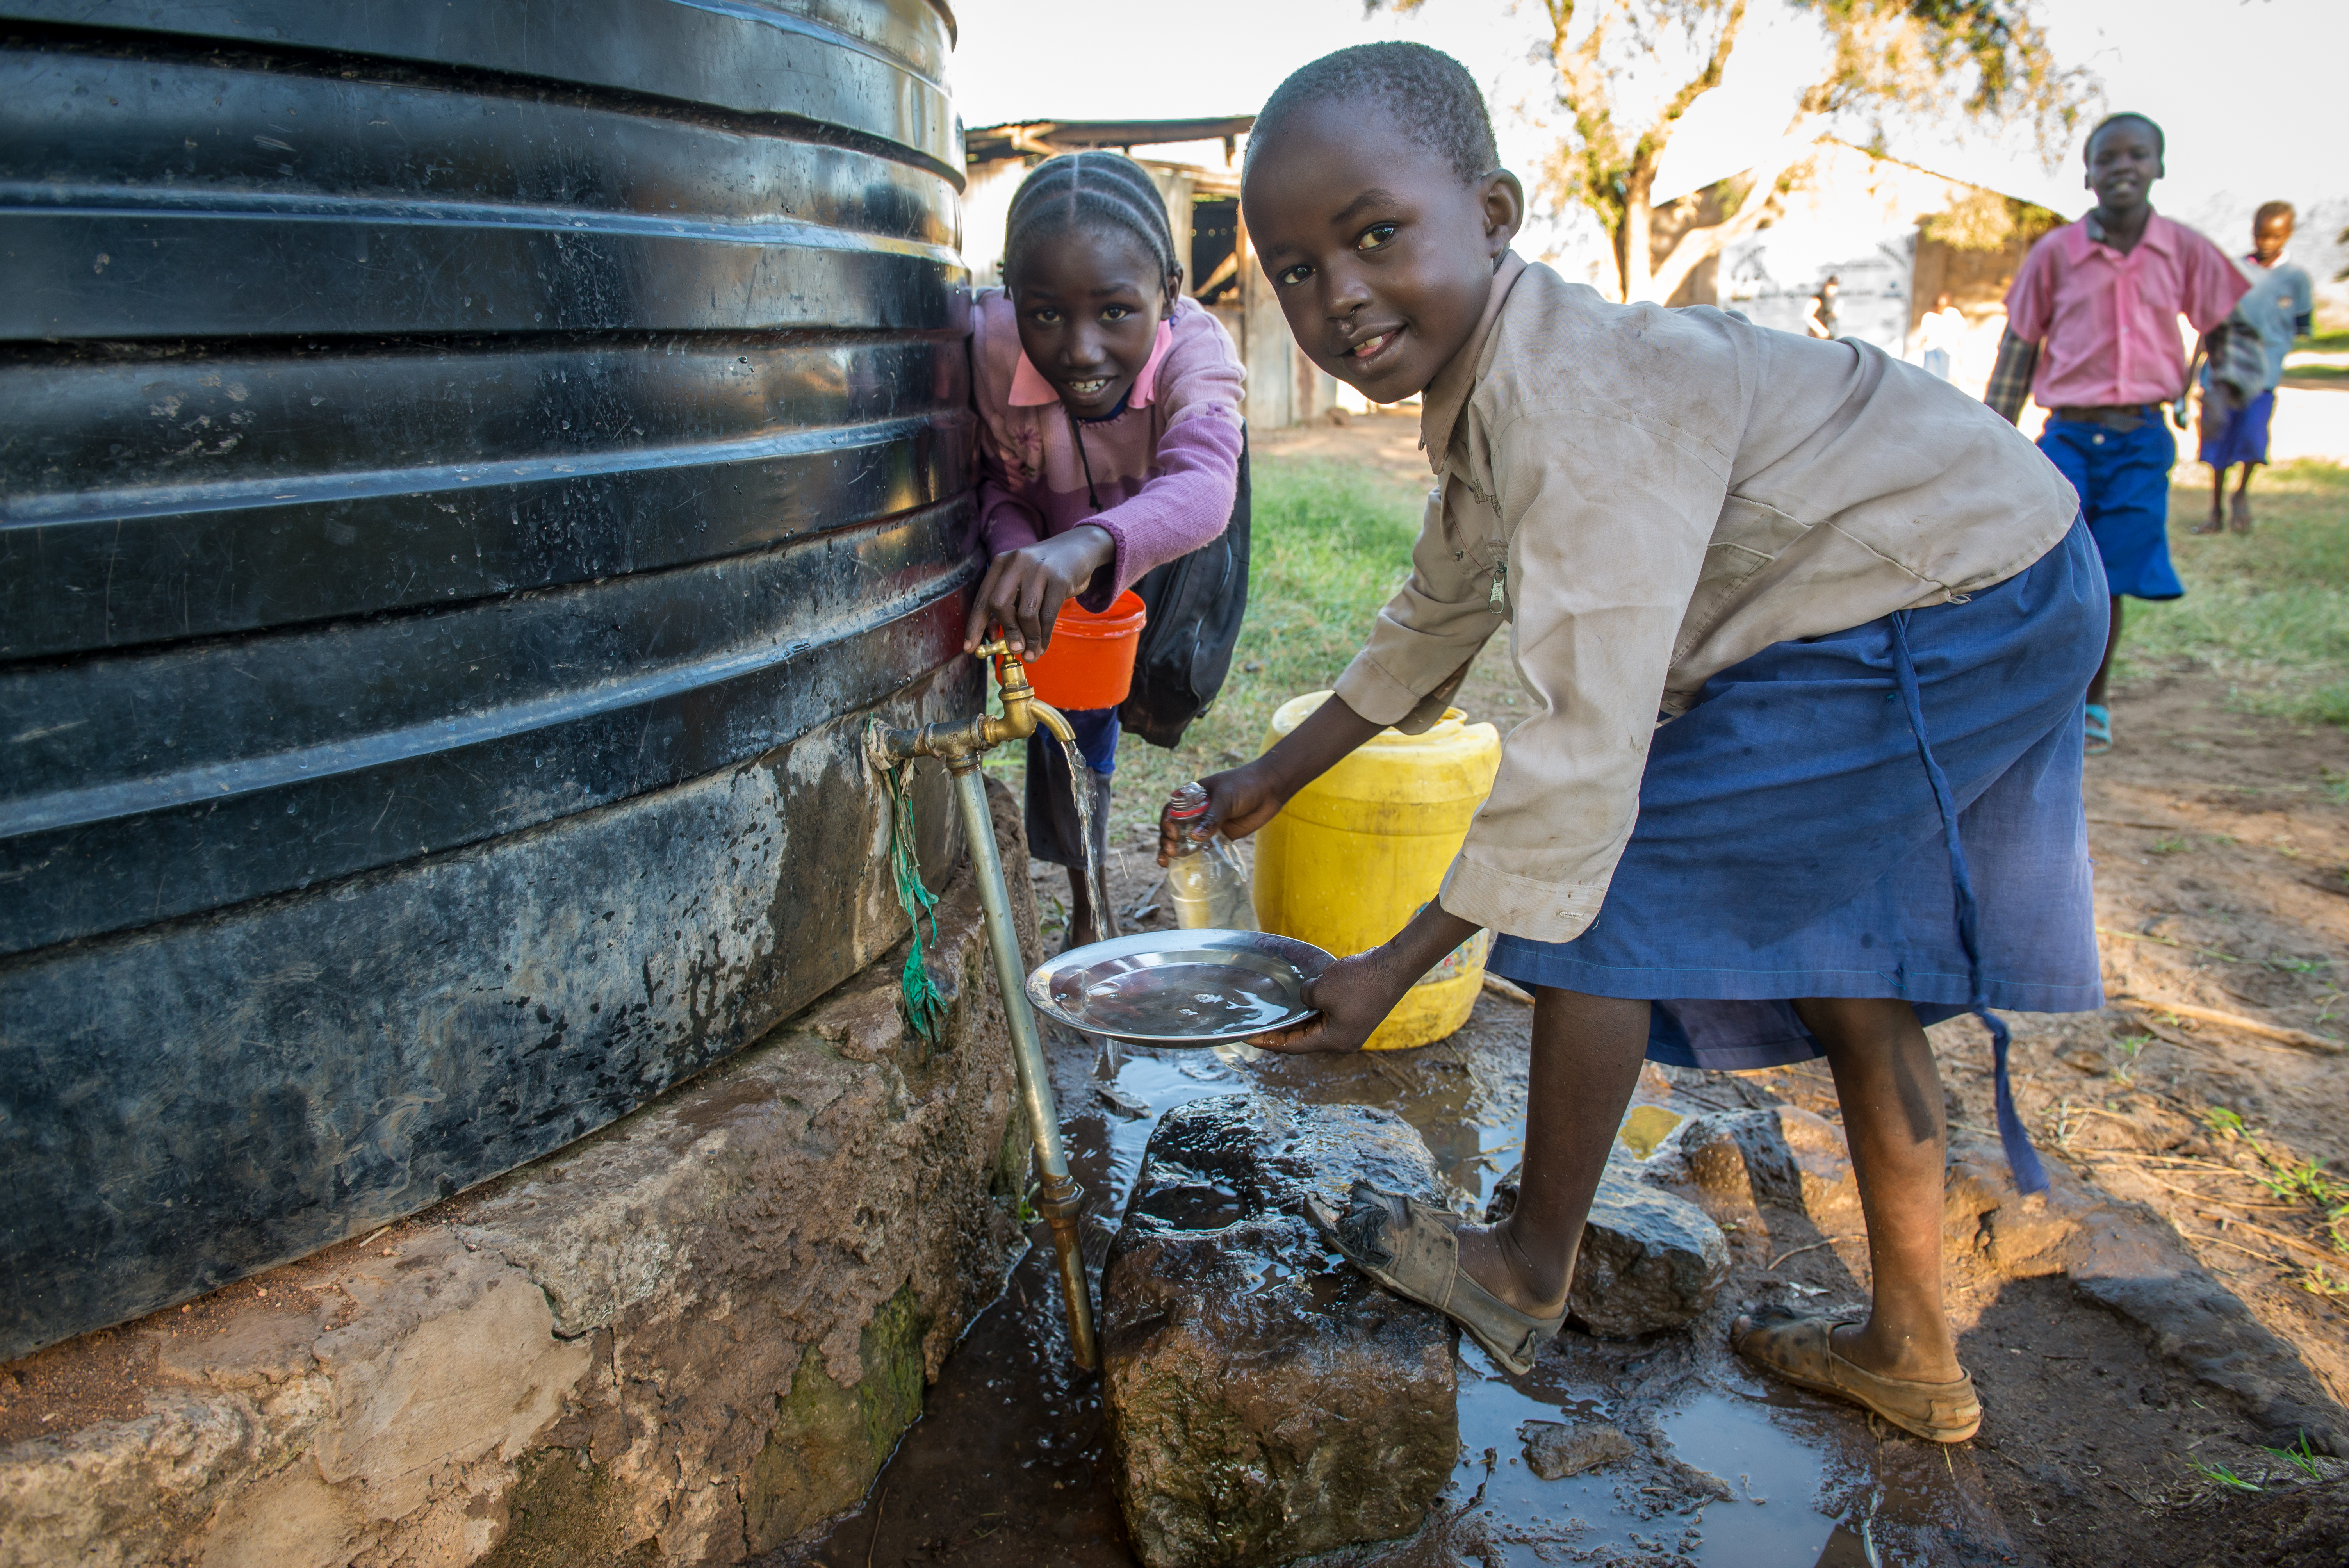 Girls collecting water at a school in Kenya